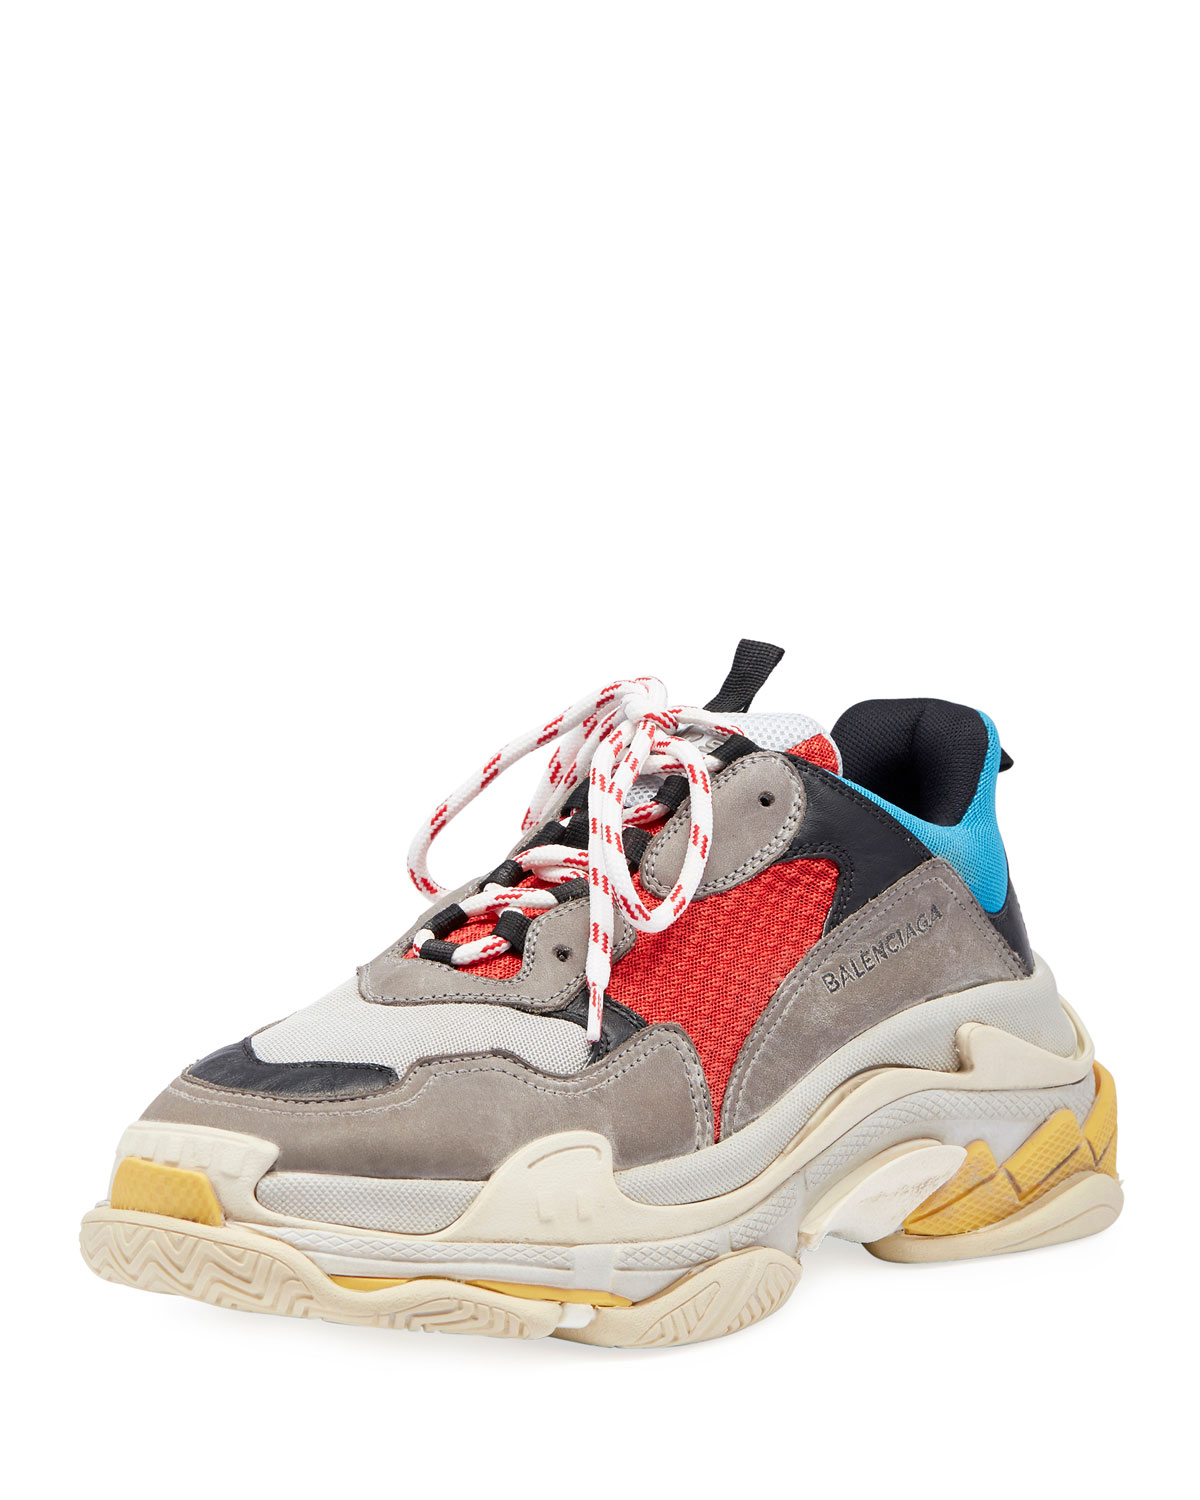 fd80bc2eaf52 are the balenciaga triple s worth it off 54% - www.ceppe-habilleur.fr